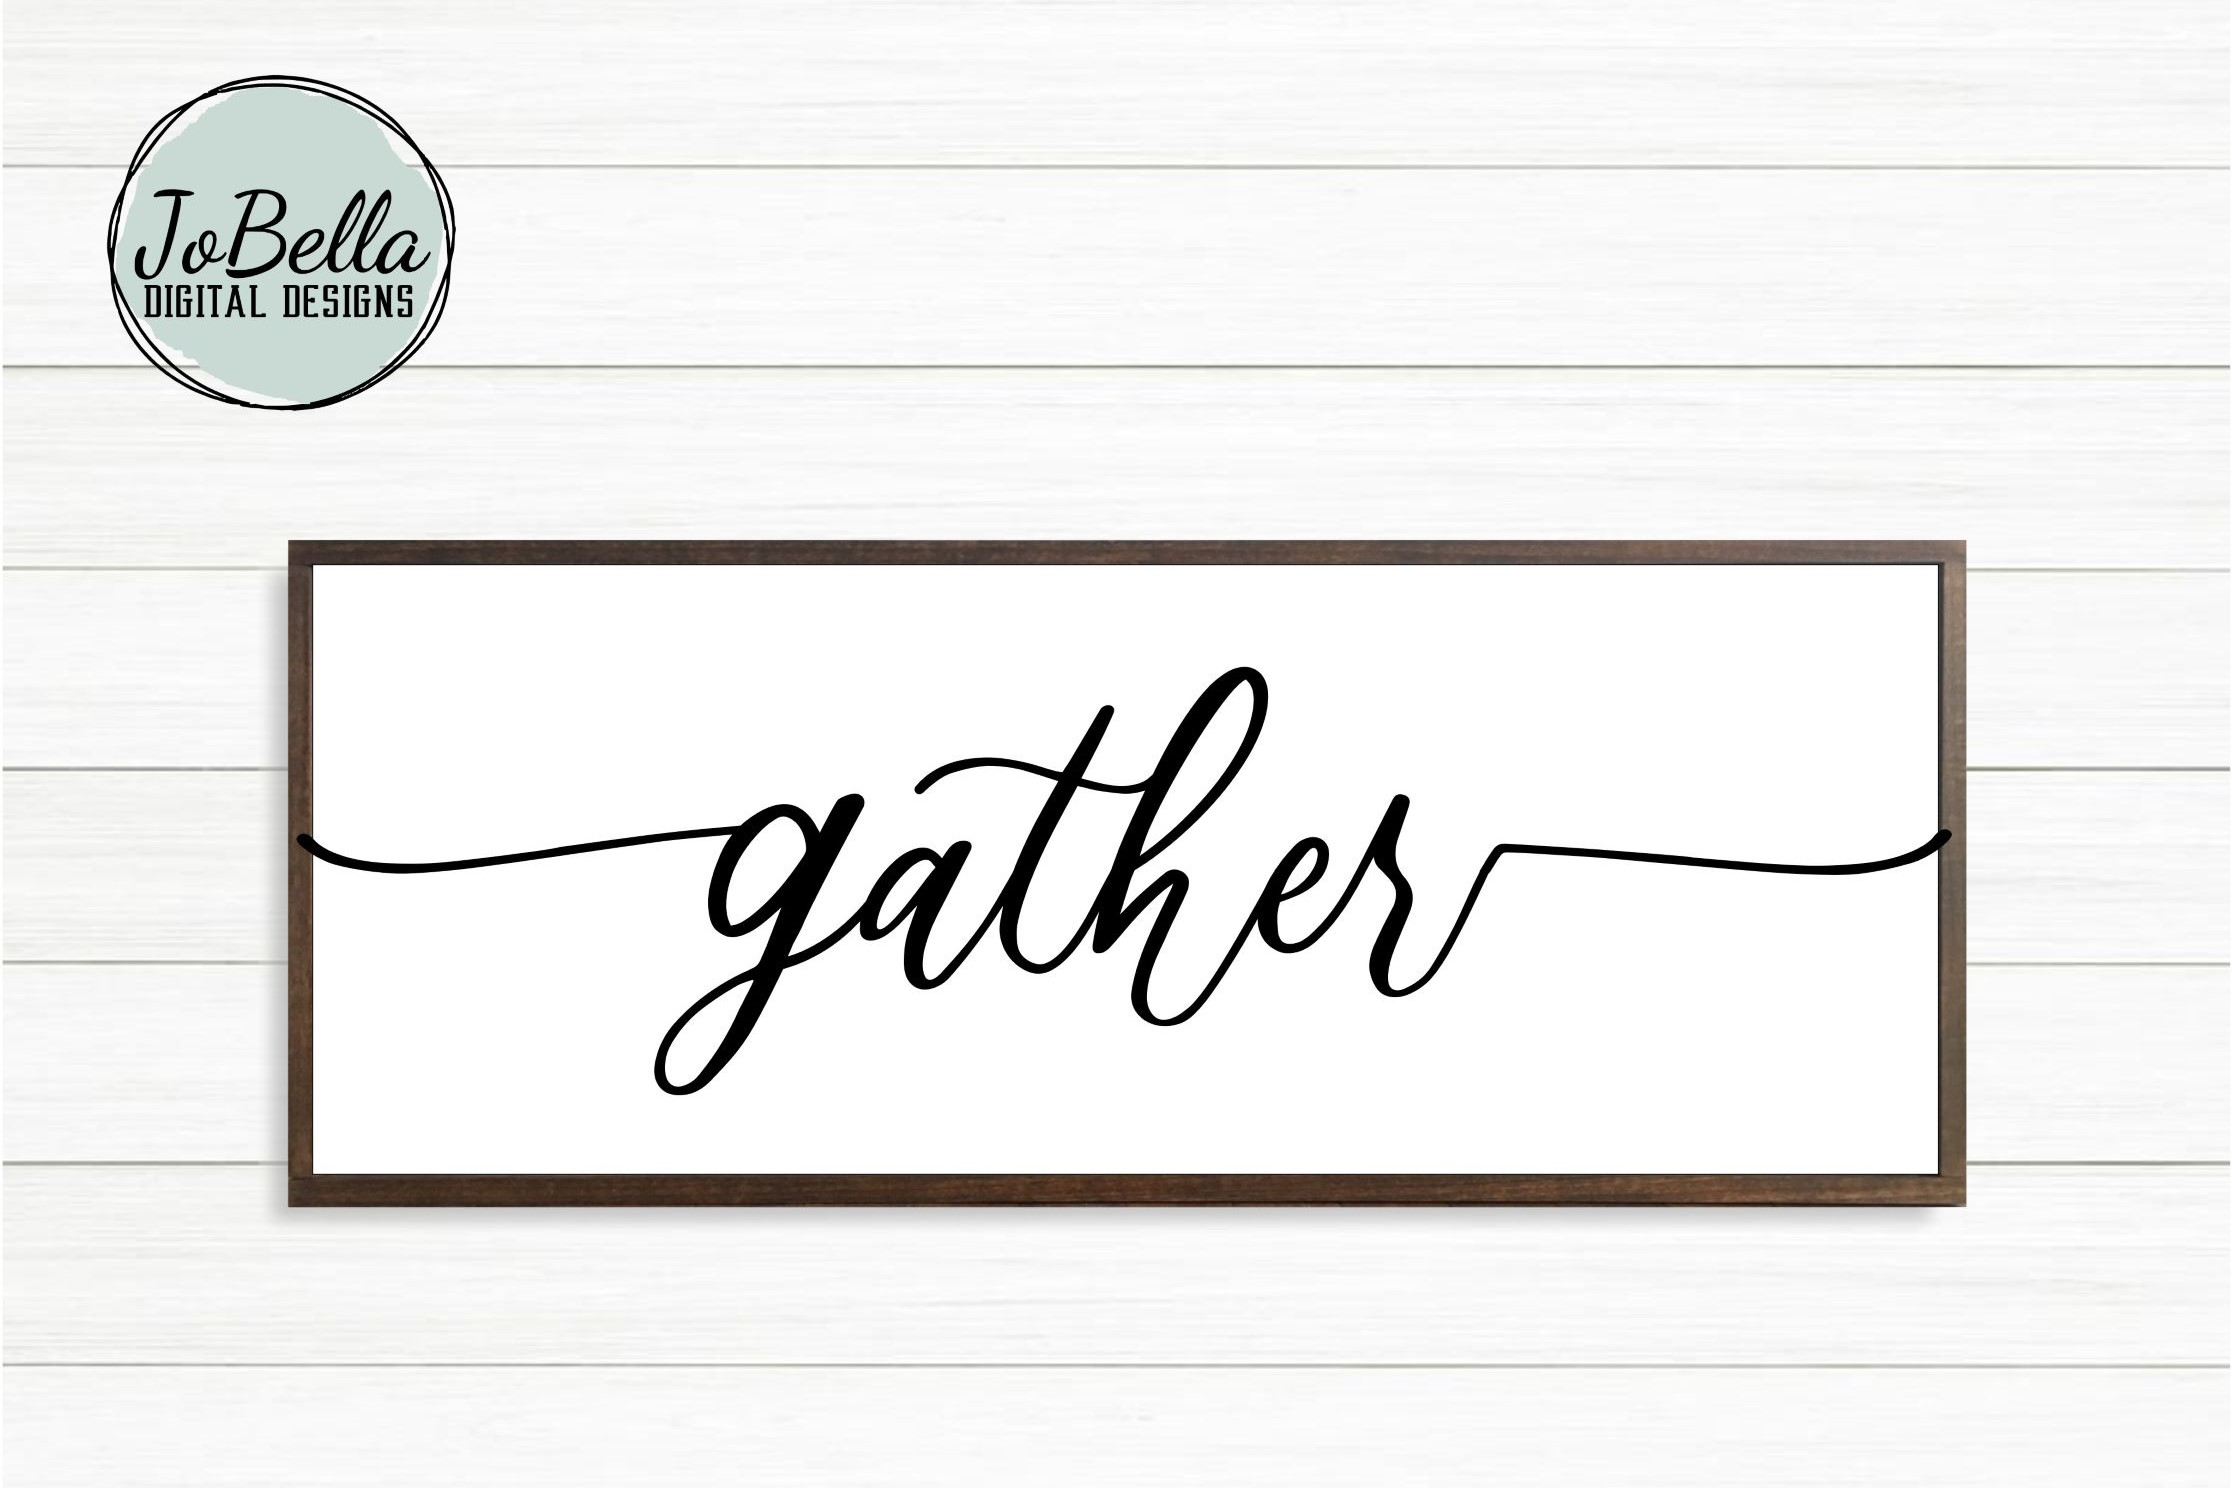 photograph about Gather Printable named Farmhouse Get SVG, Sublimation PNG and Printable